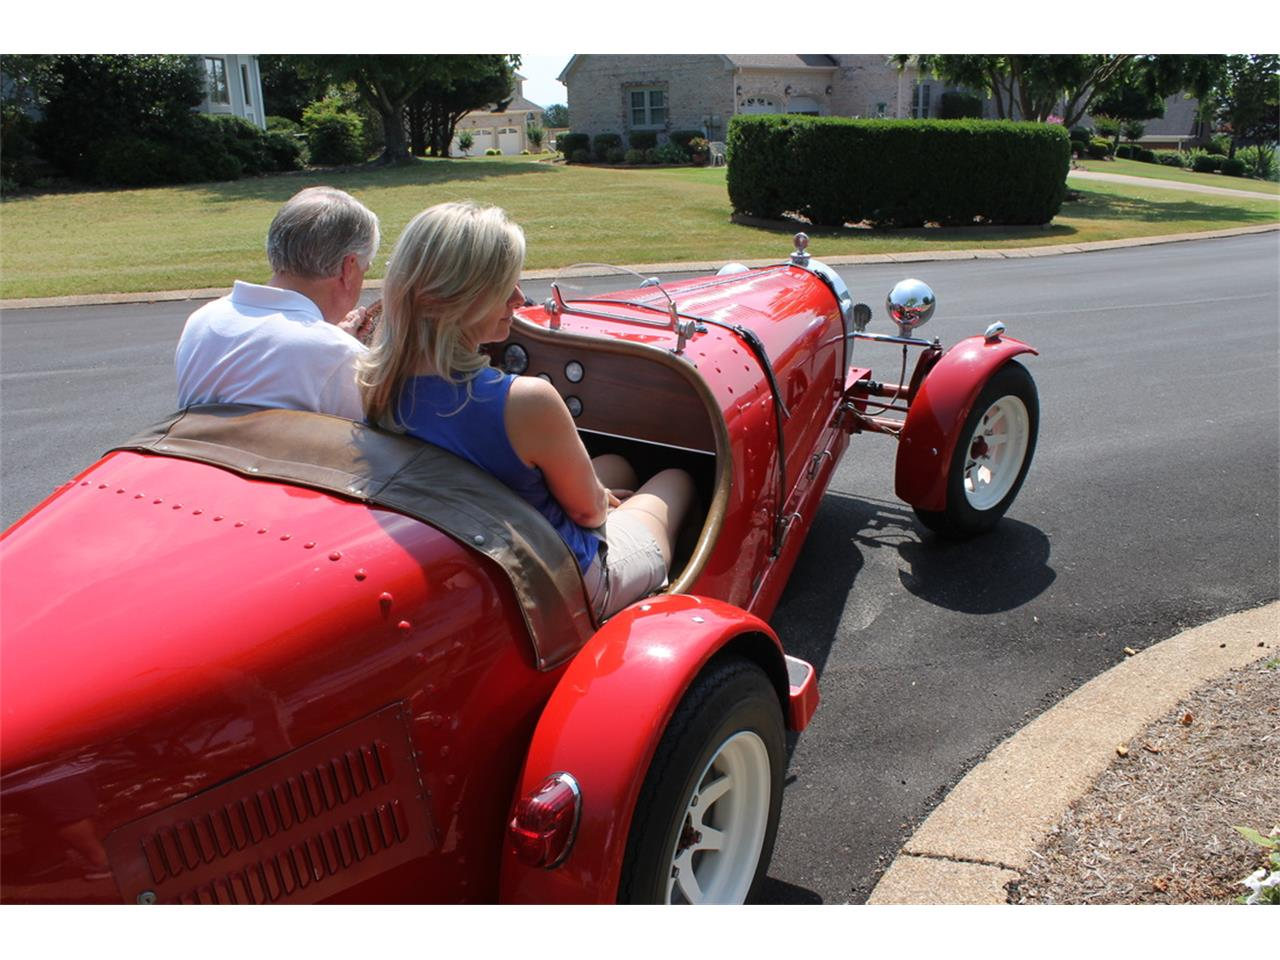 Large Picture of 1927 Bugatti Replica located in Tennessee Offered by a Private Seller - MEIY